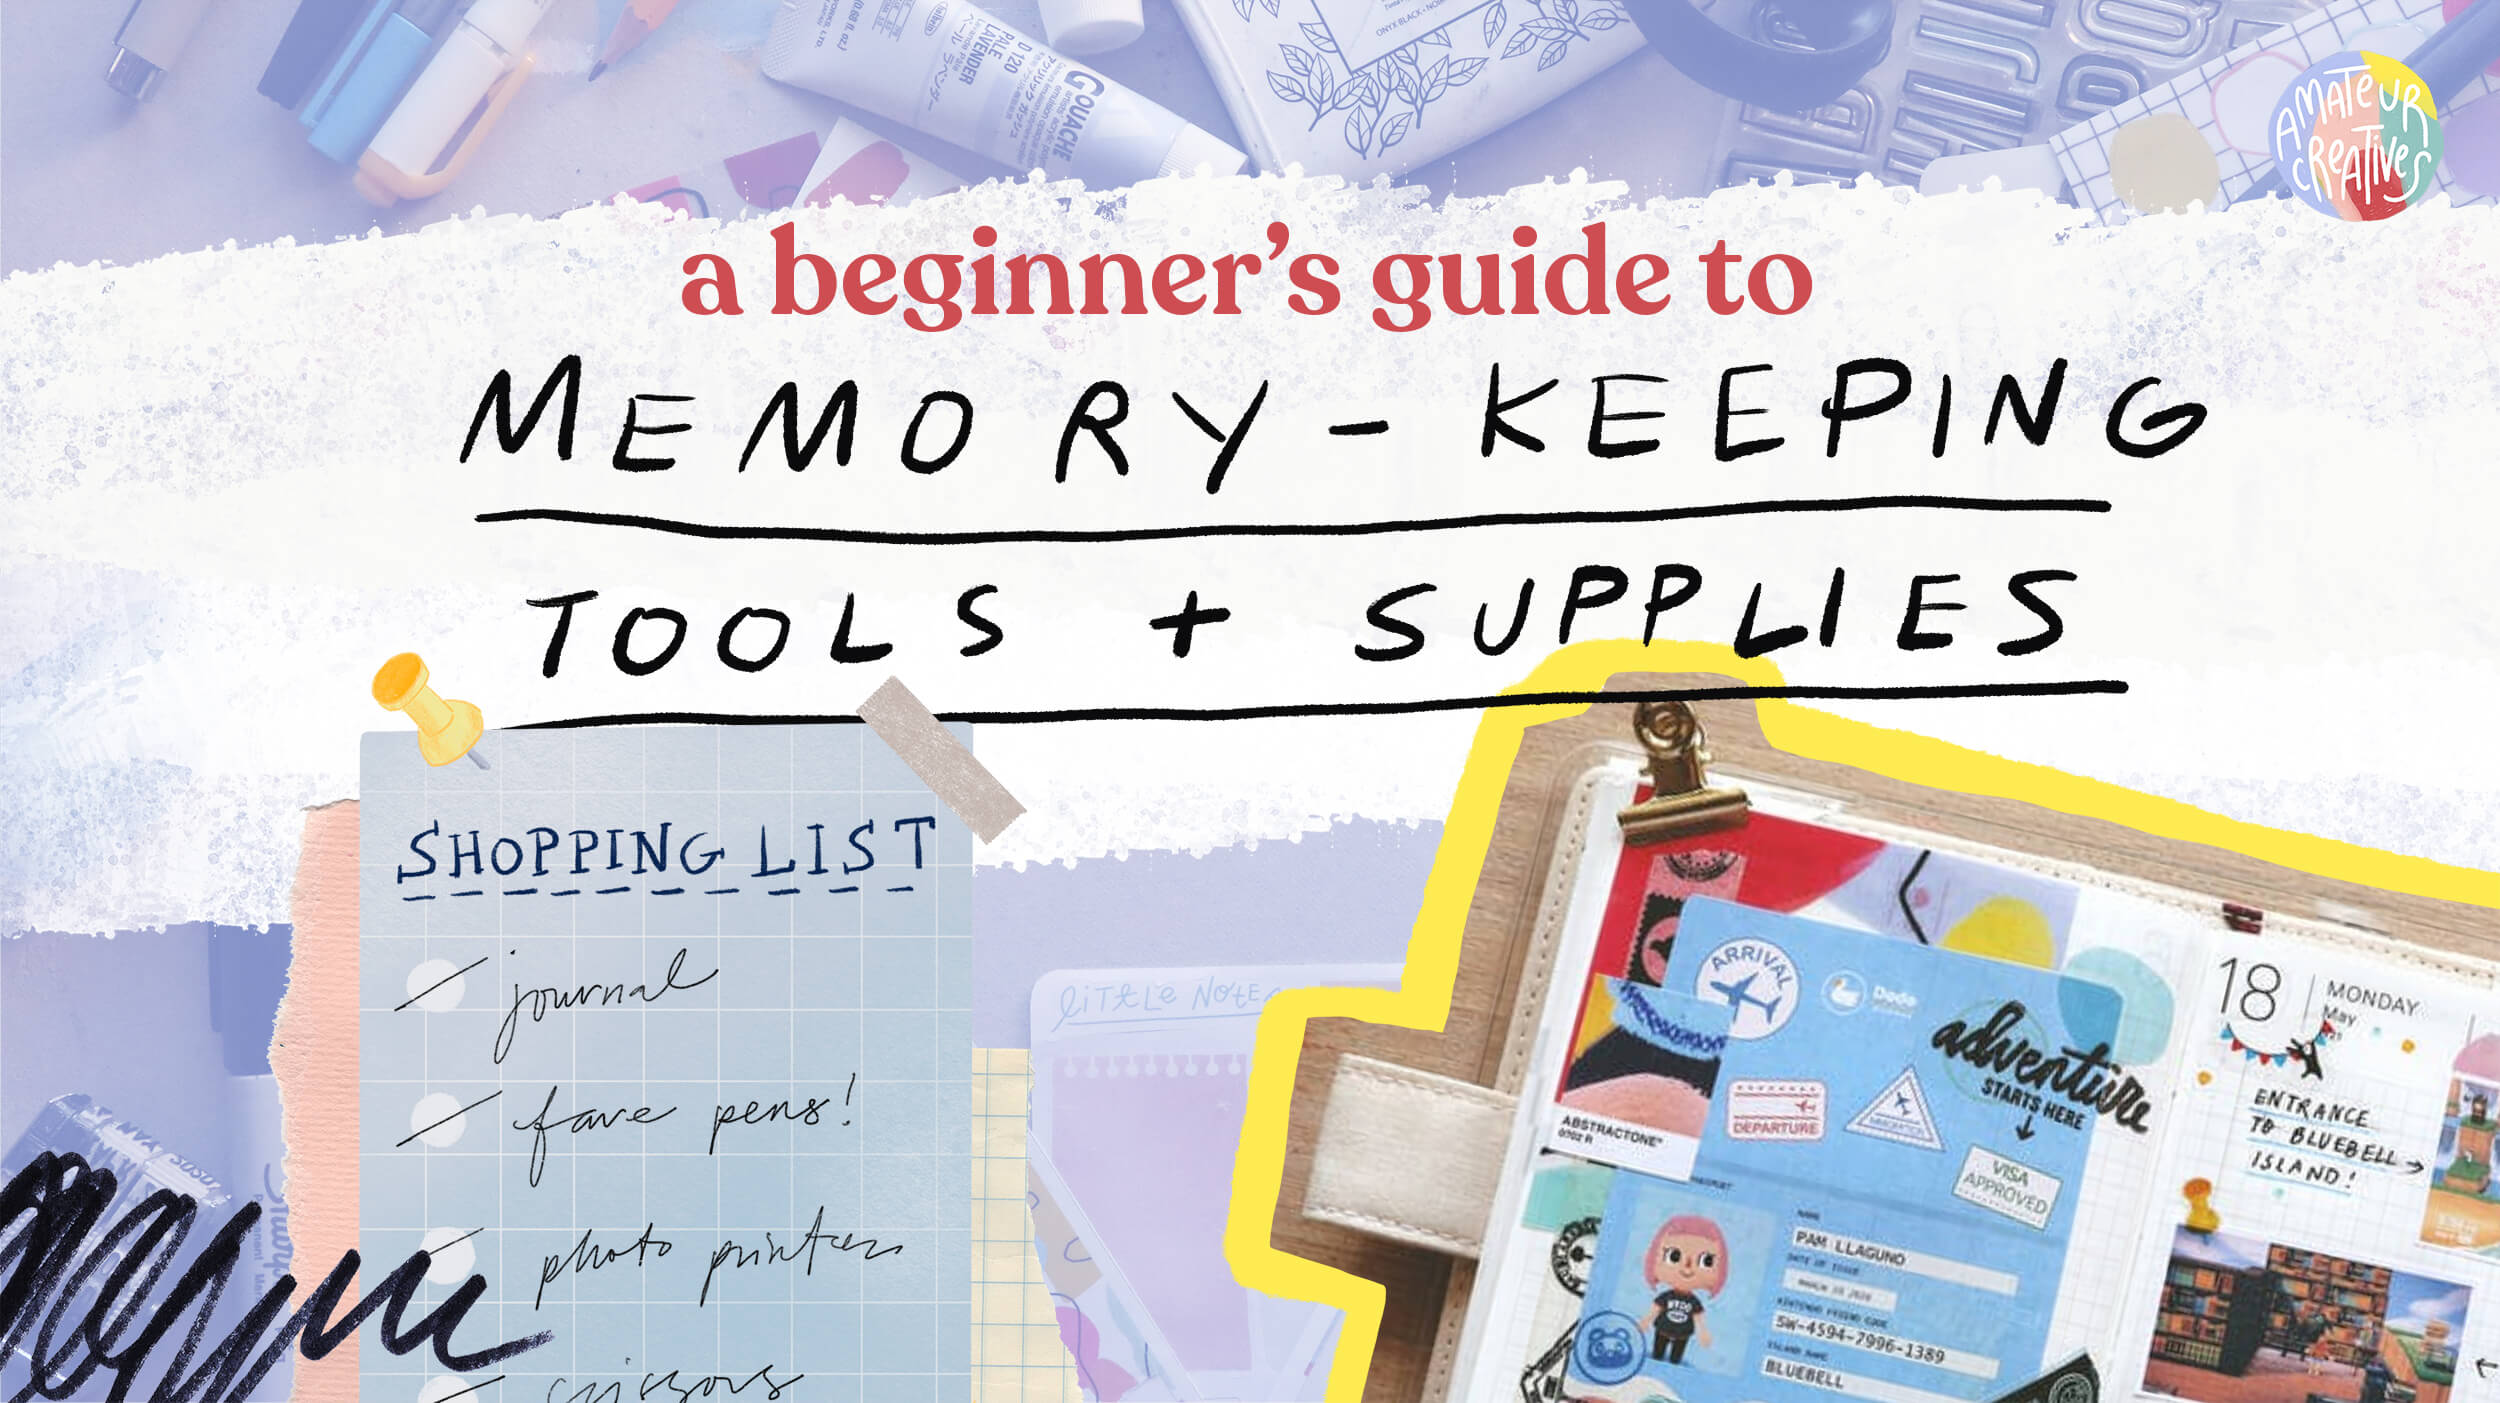 memory-keeping-tools-supplies_featured